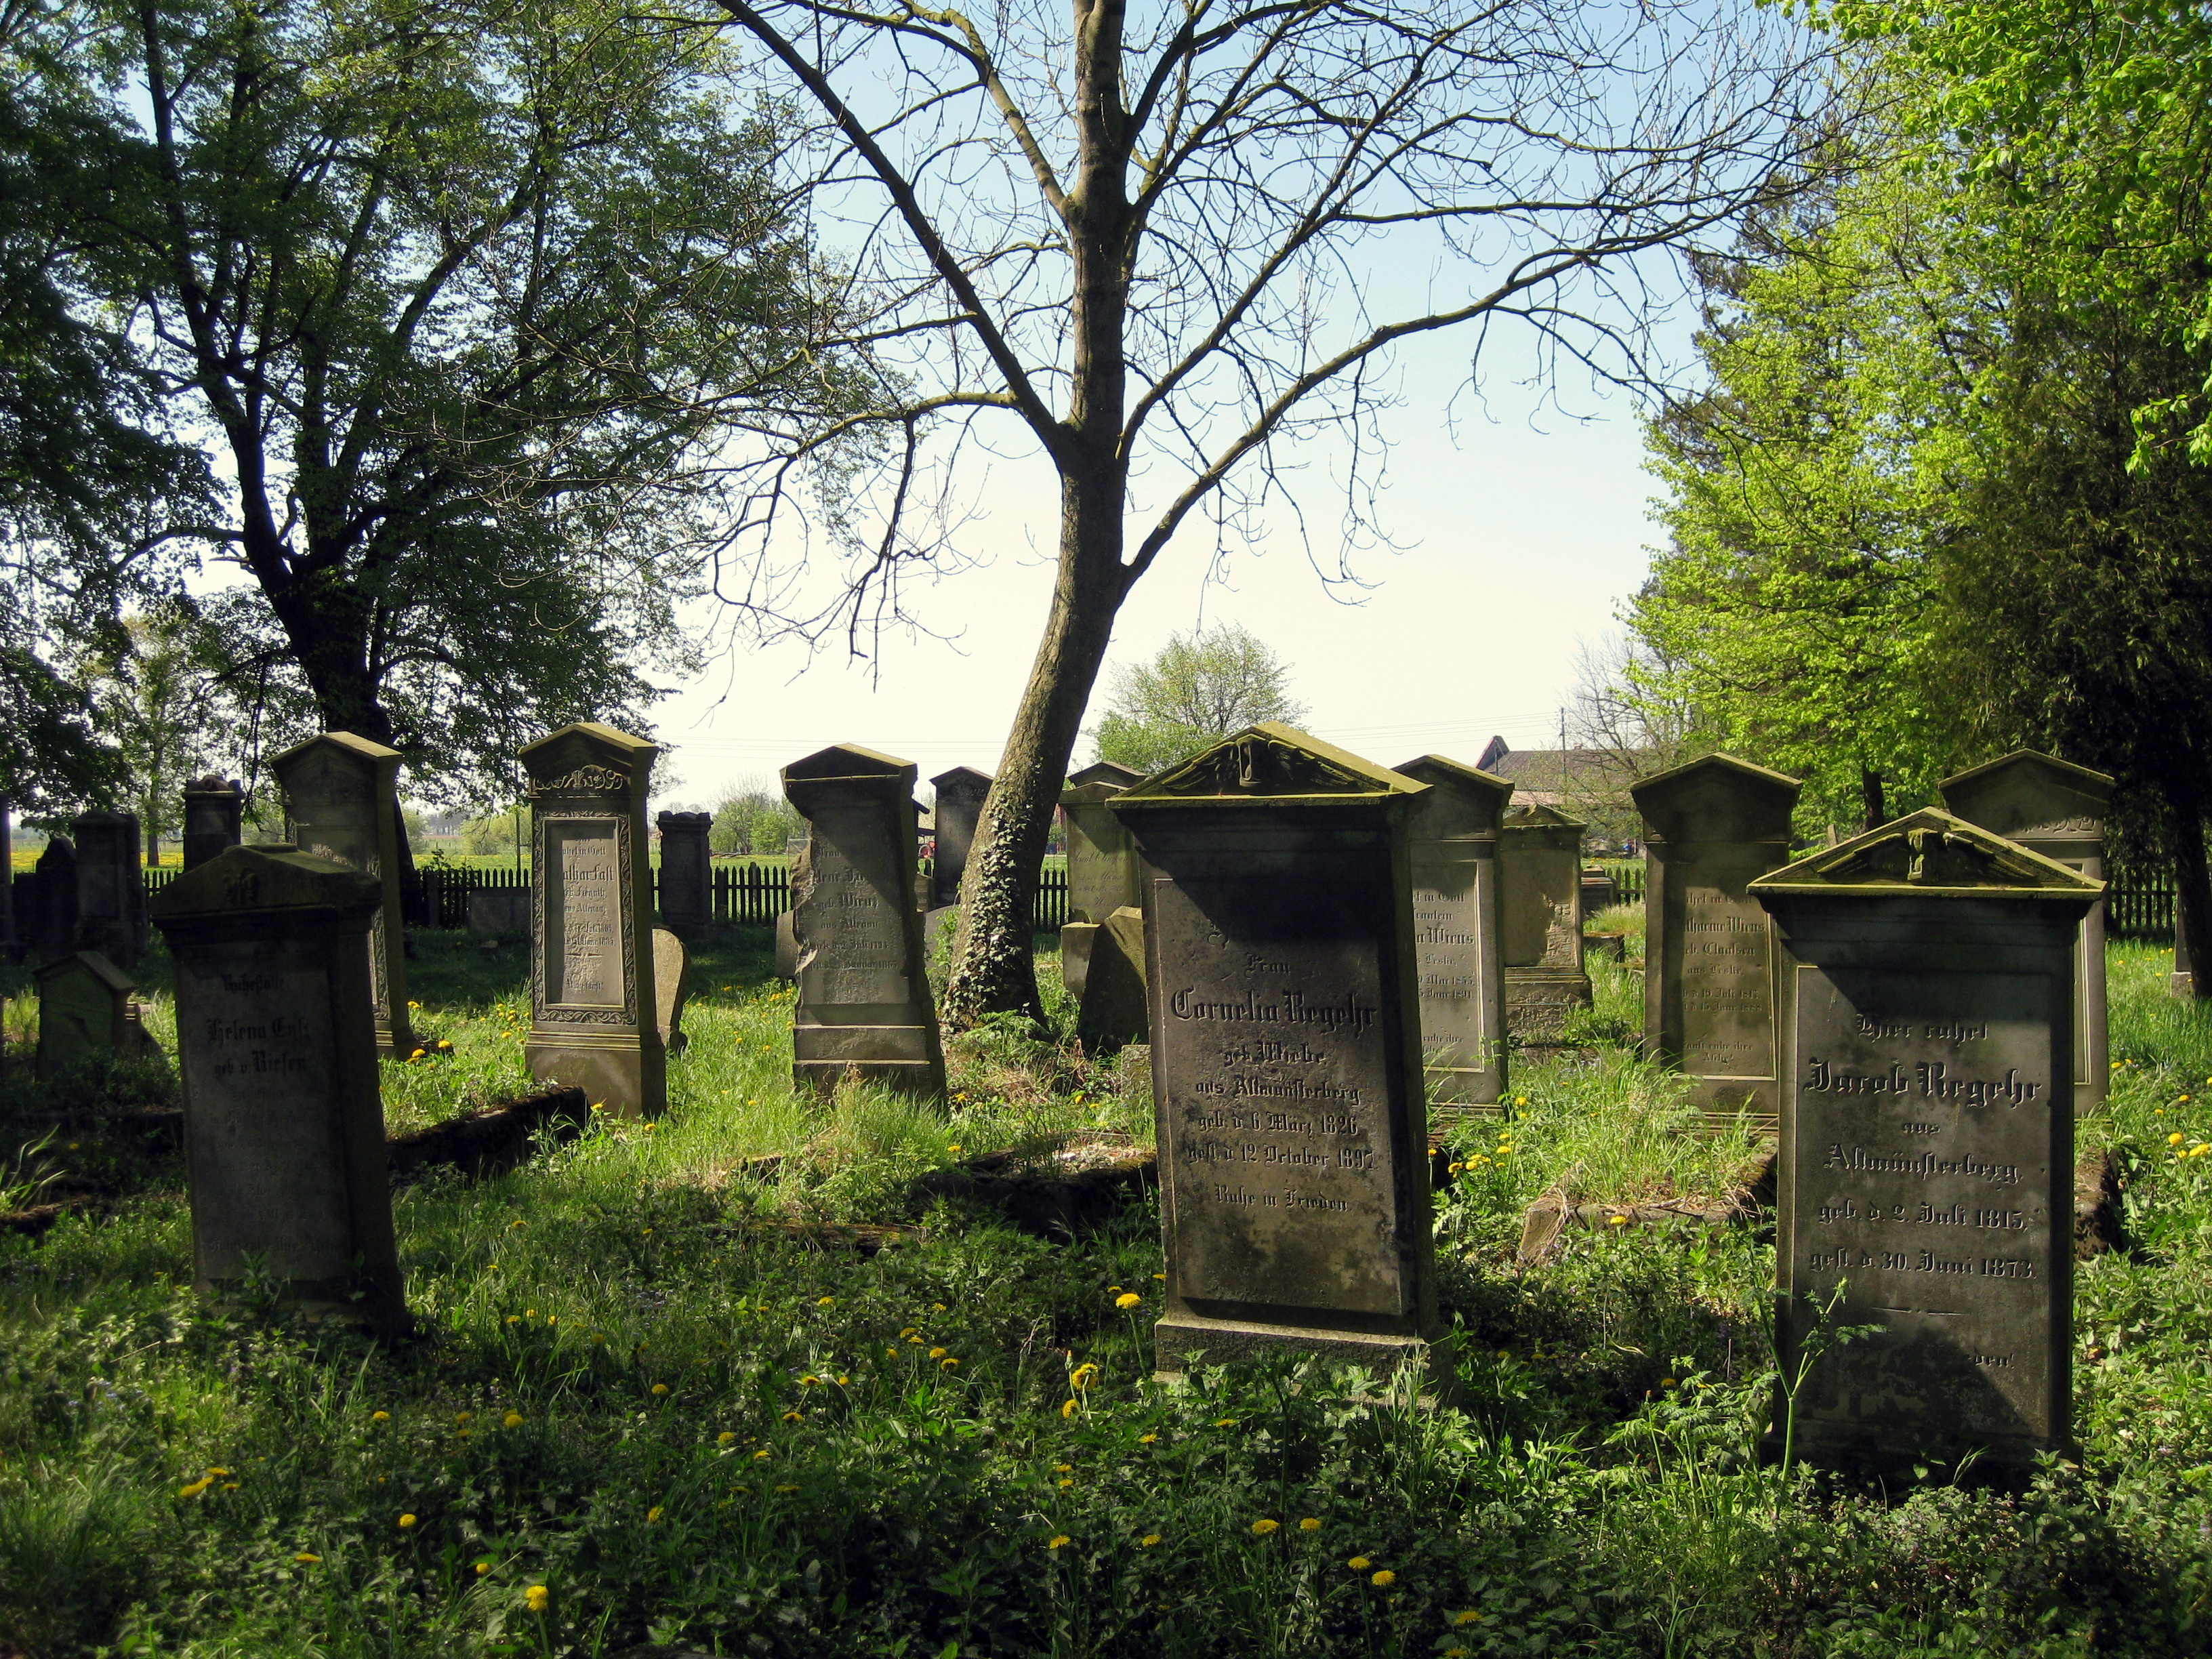 File:Mennonite Graveyard Heubuden 3.JPG - Wikipedia, the free ...